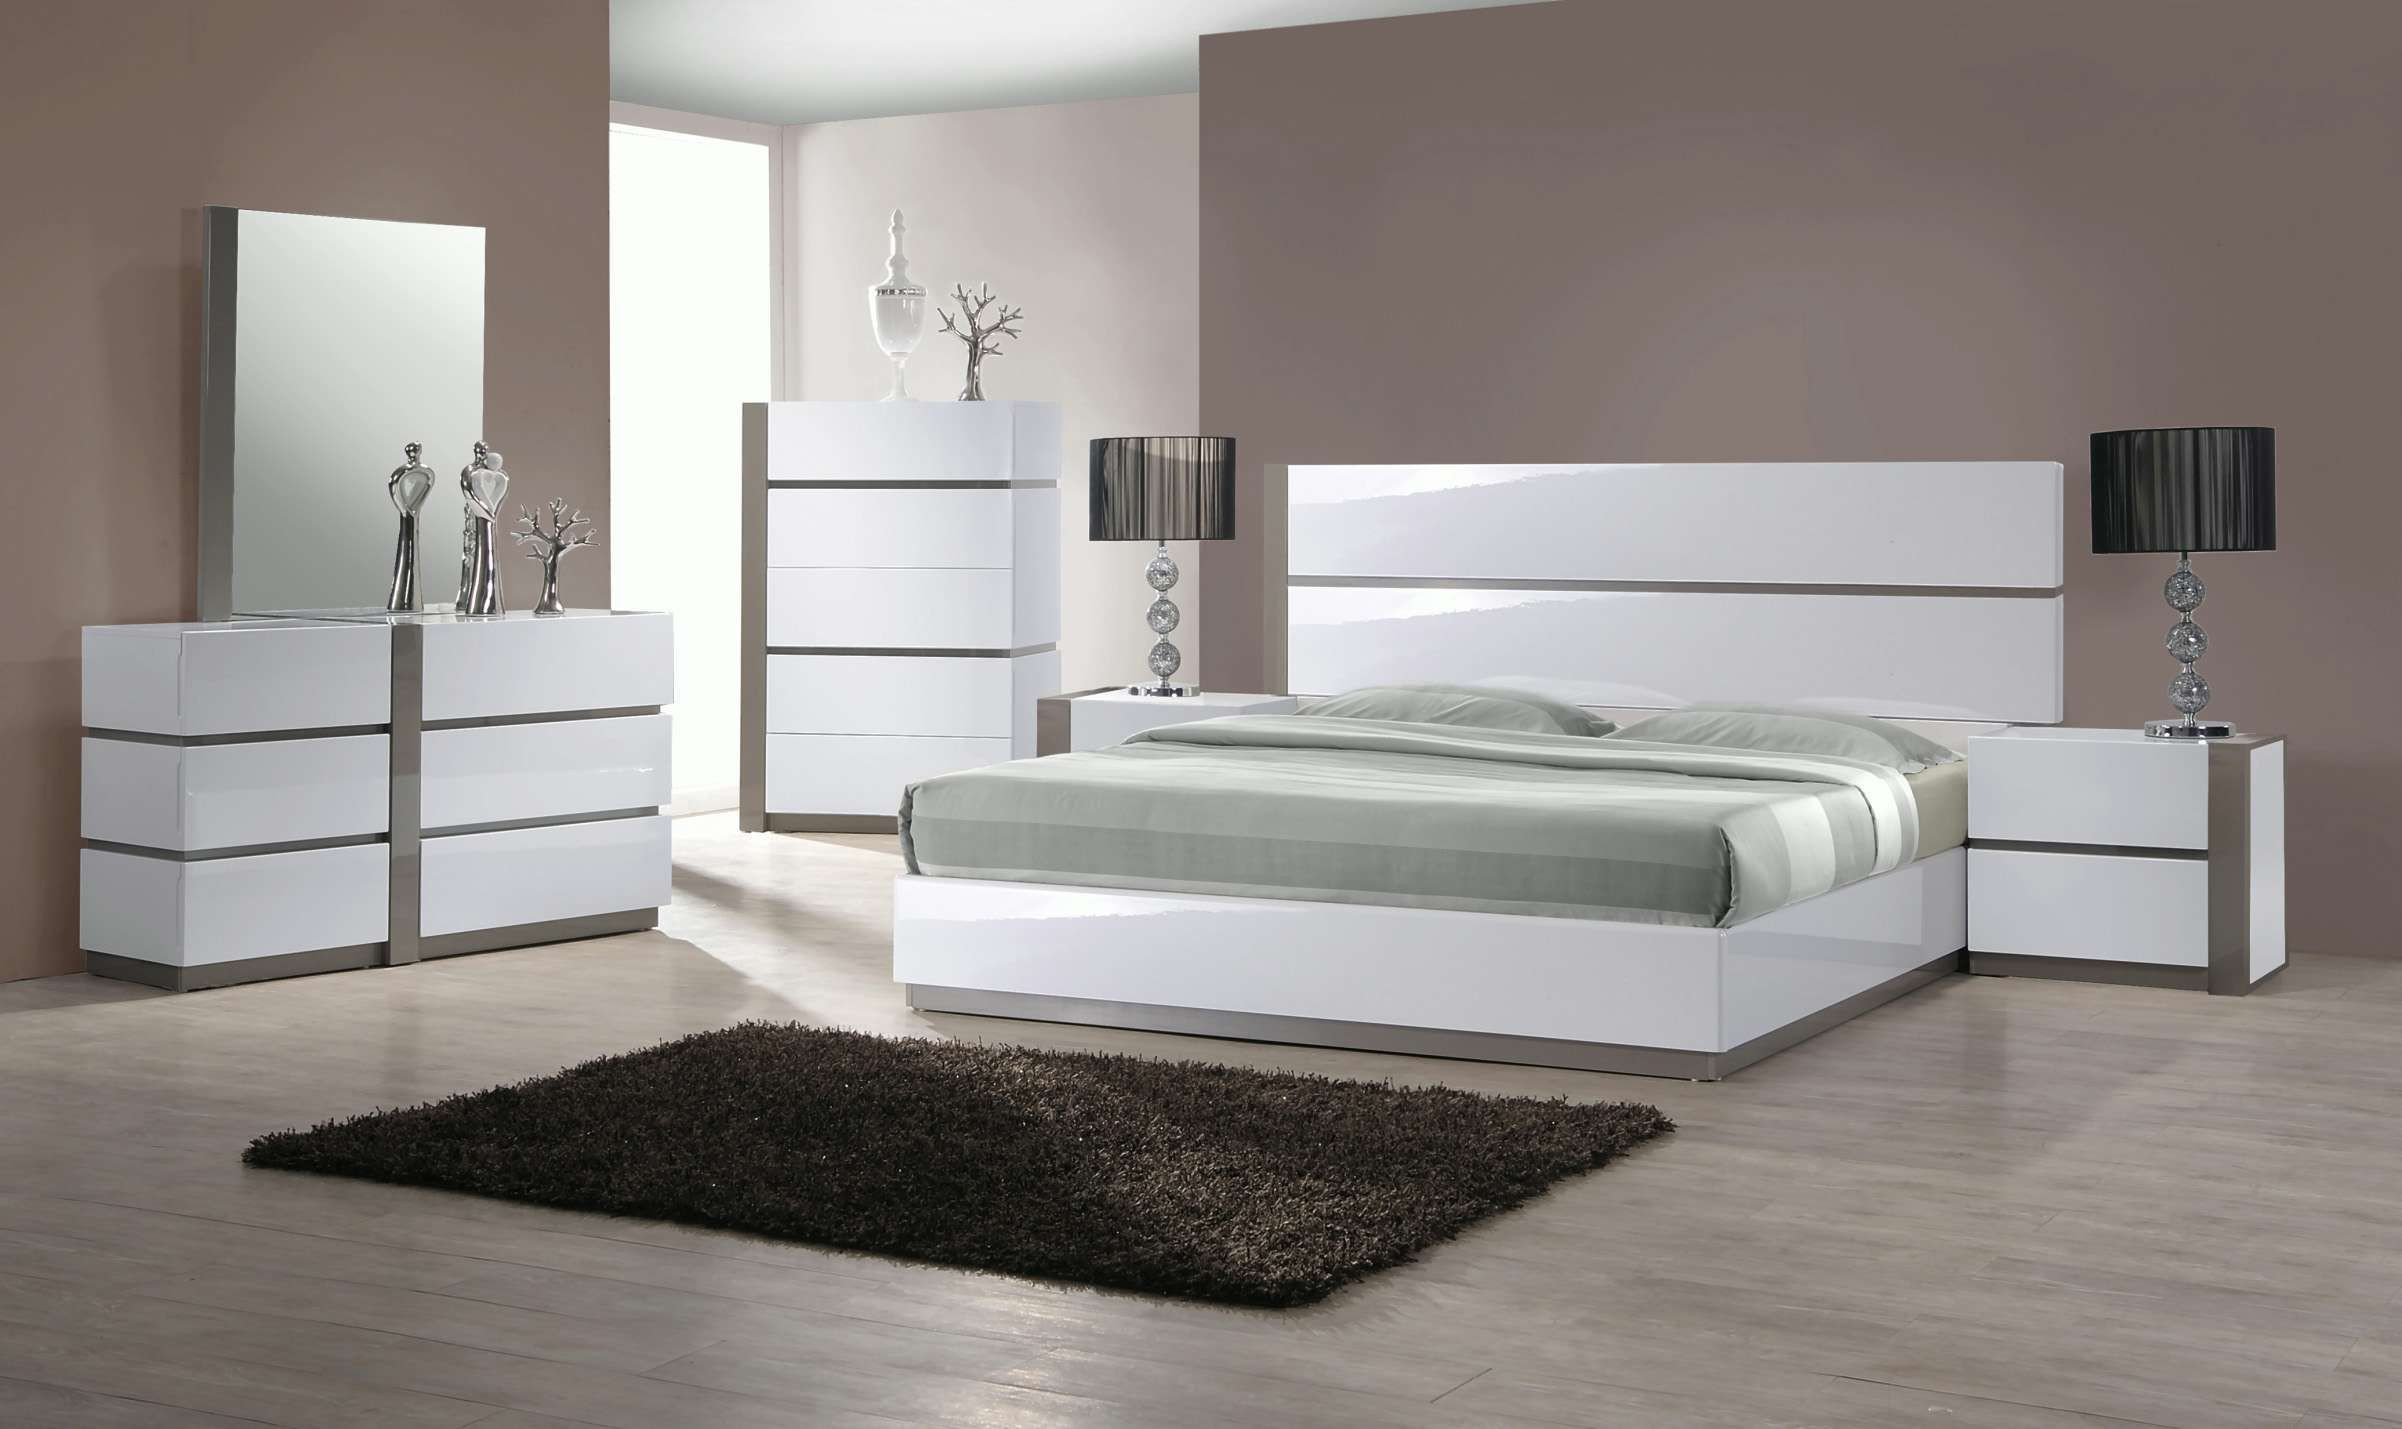 White Gloss Bedroom Furniture Elegant Chintaly Imports Left 2 Drawer Night Stand & Reviews